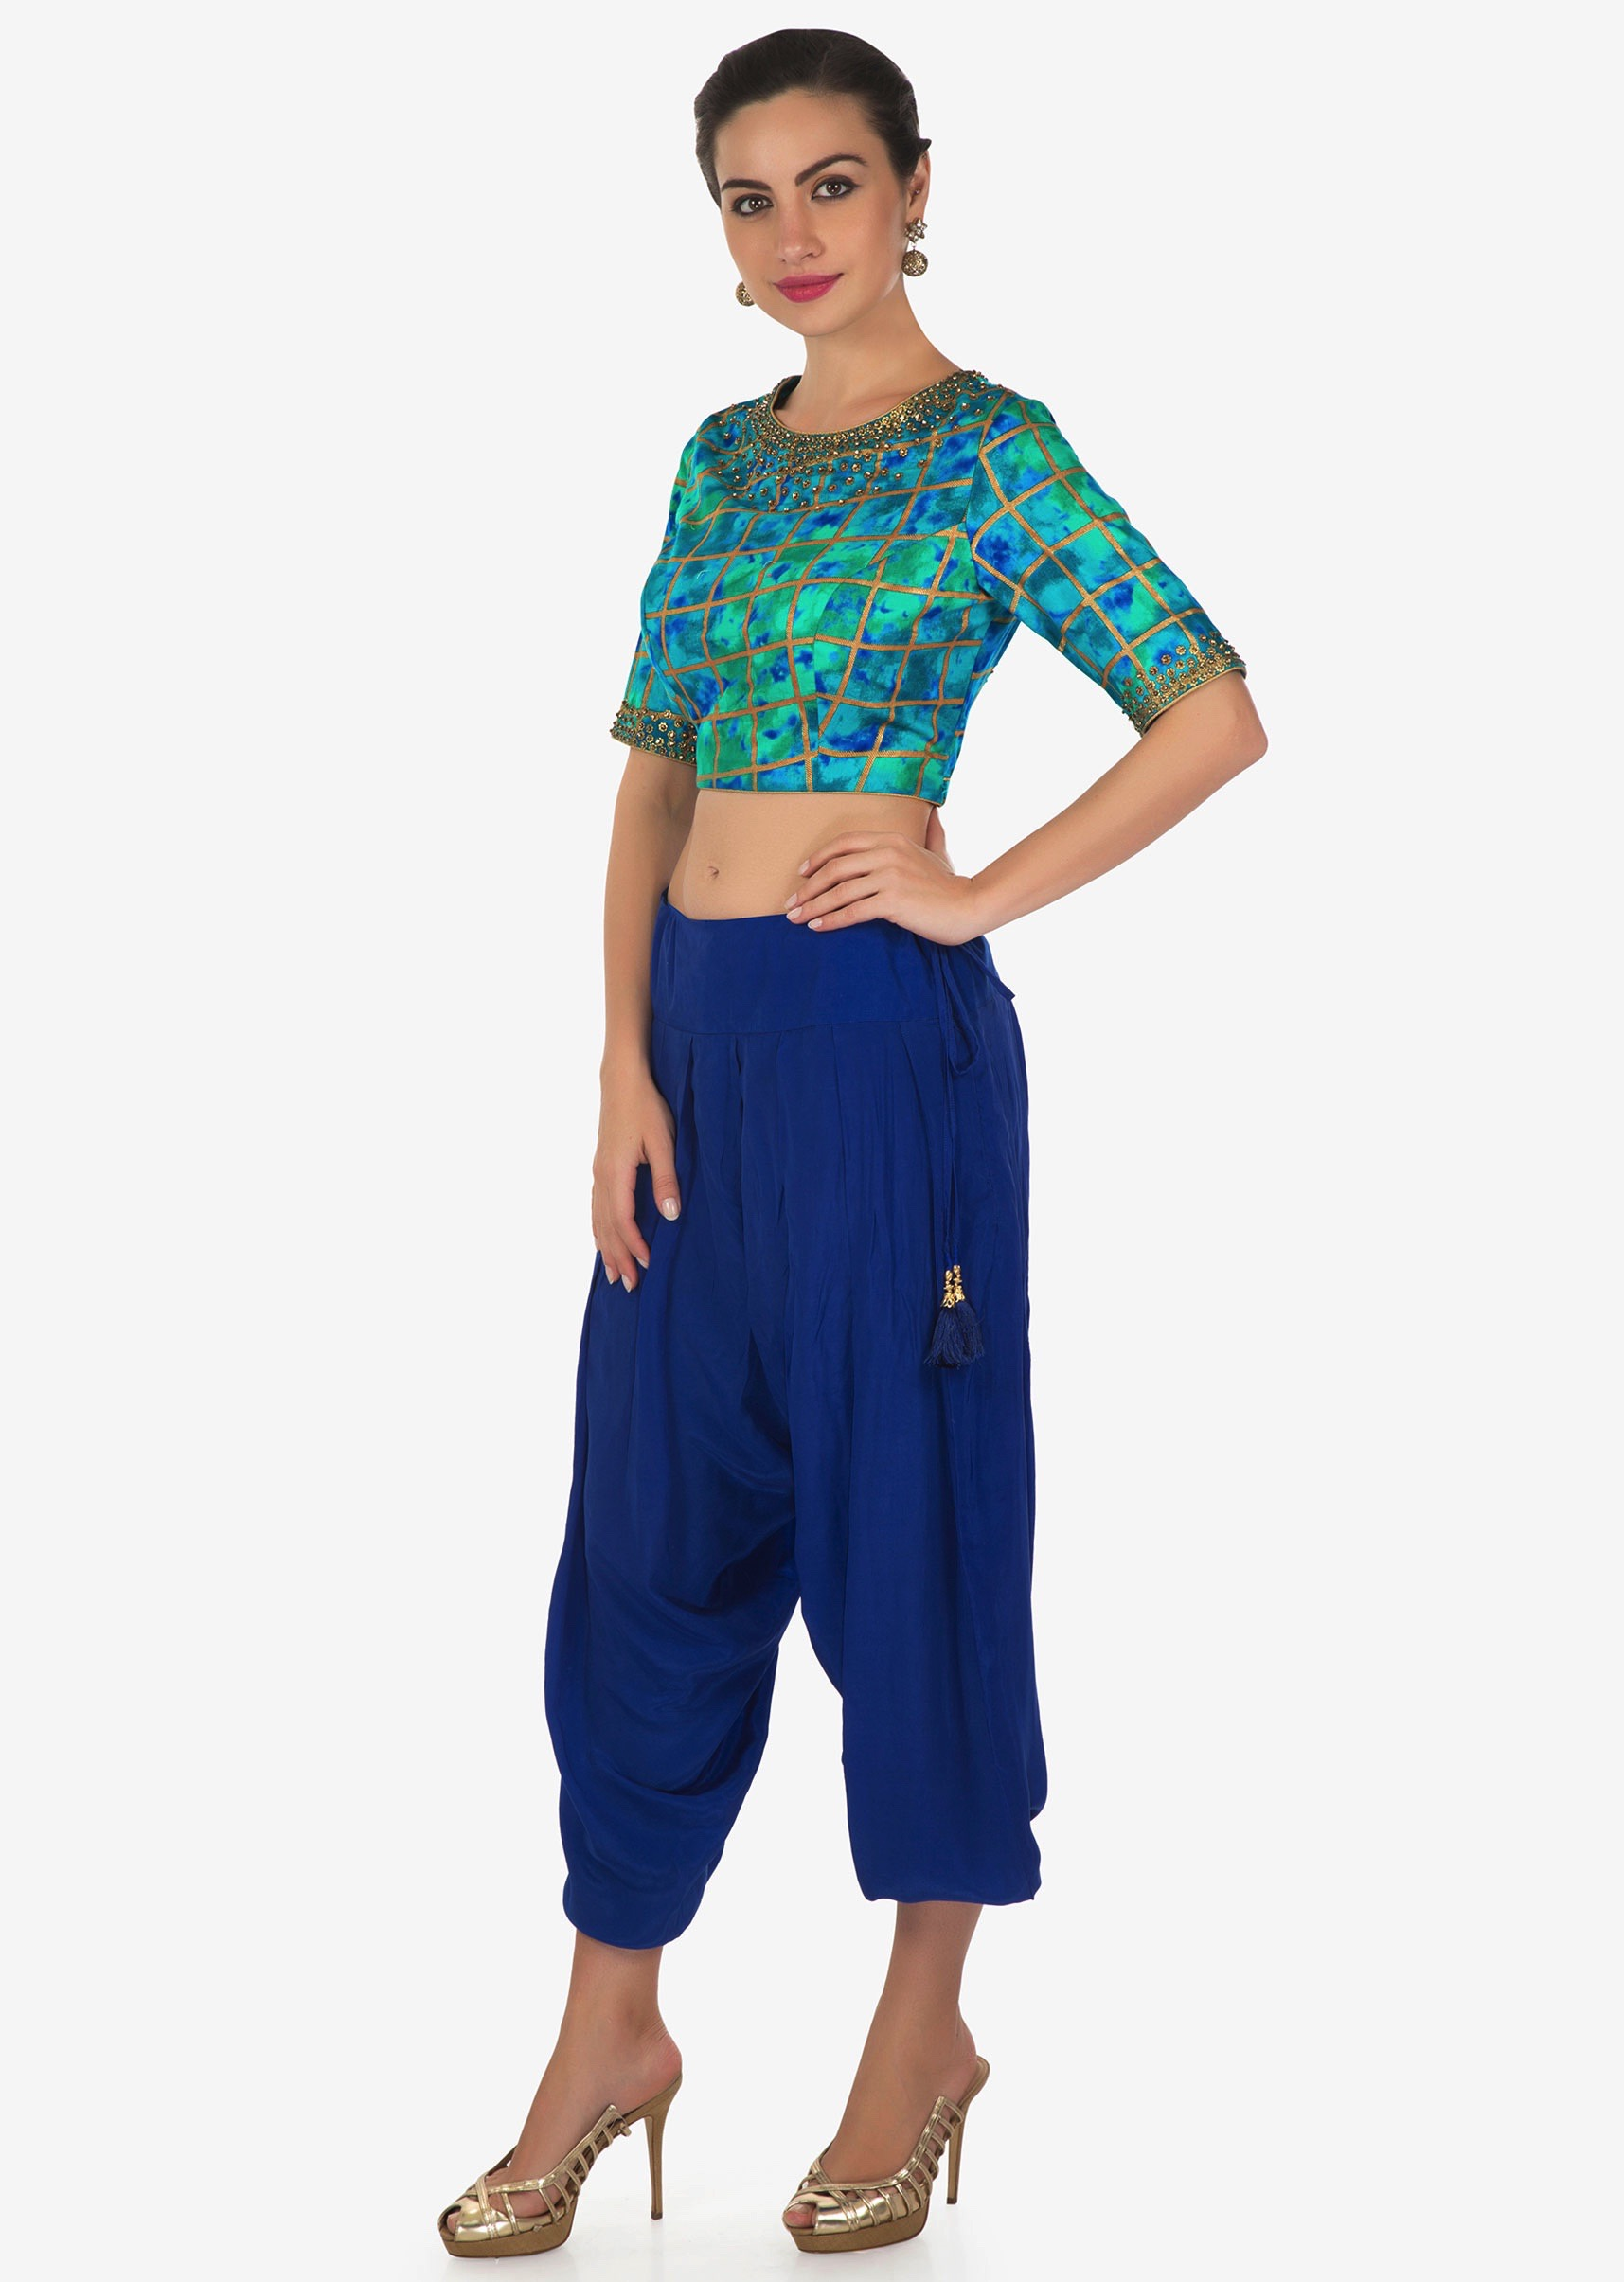 fe1d706b8fec7b Royal blue dhoti pants matched with shaded crop top blouse in kundan  embroidery only on KalkiMore Detail